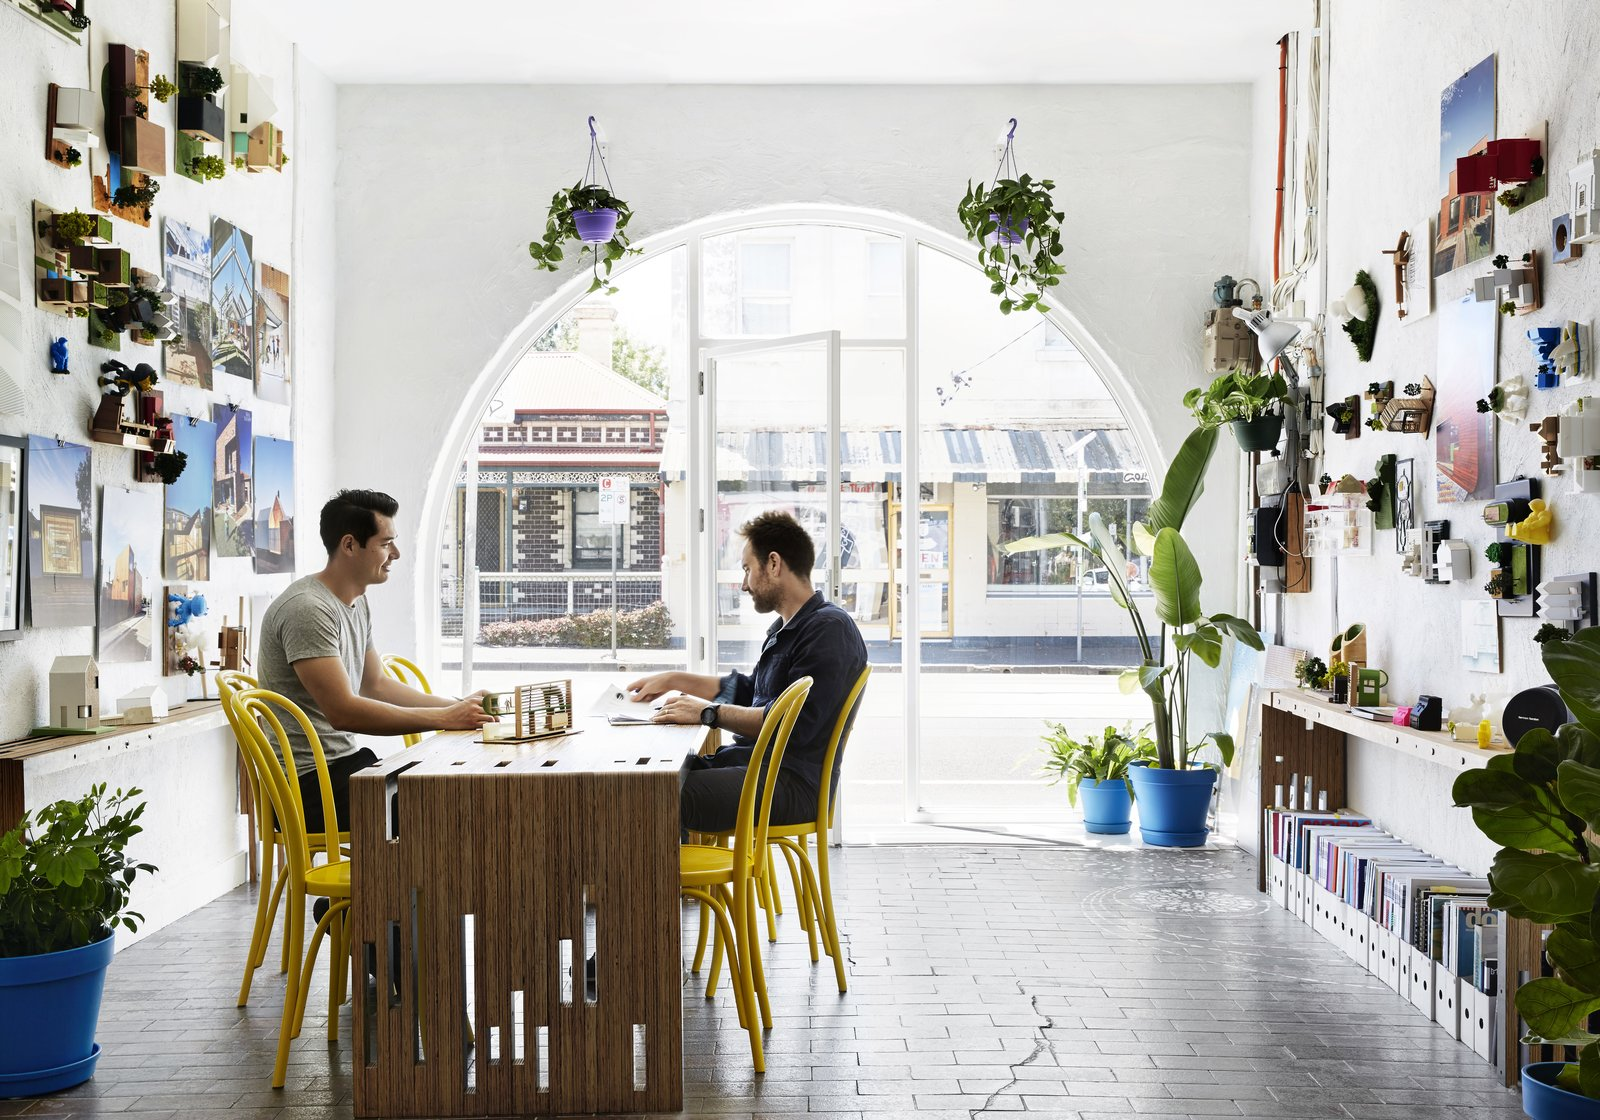 Photo 3 of 12 in An Architect Turns His Victorian Home Into a Sun-Drenched Live/Work Space